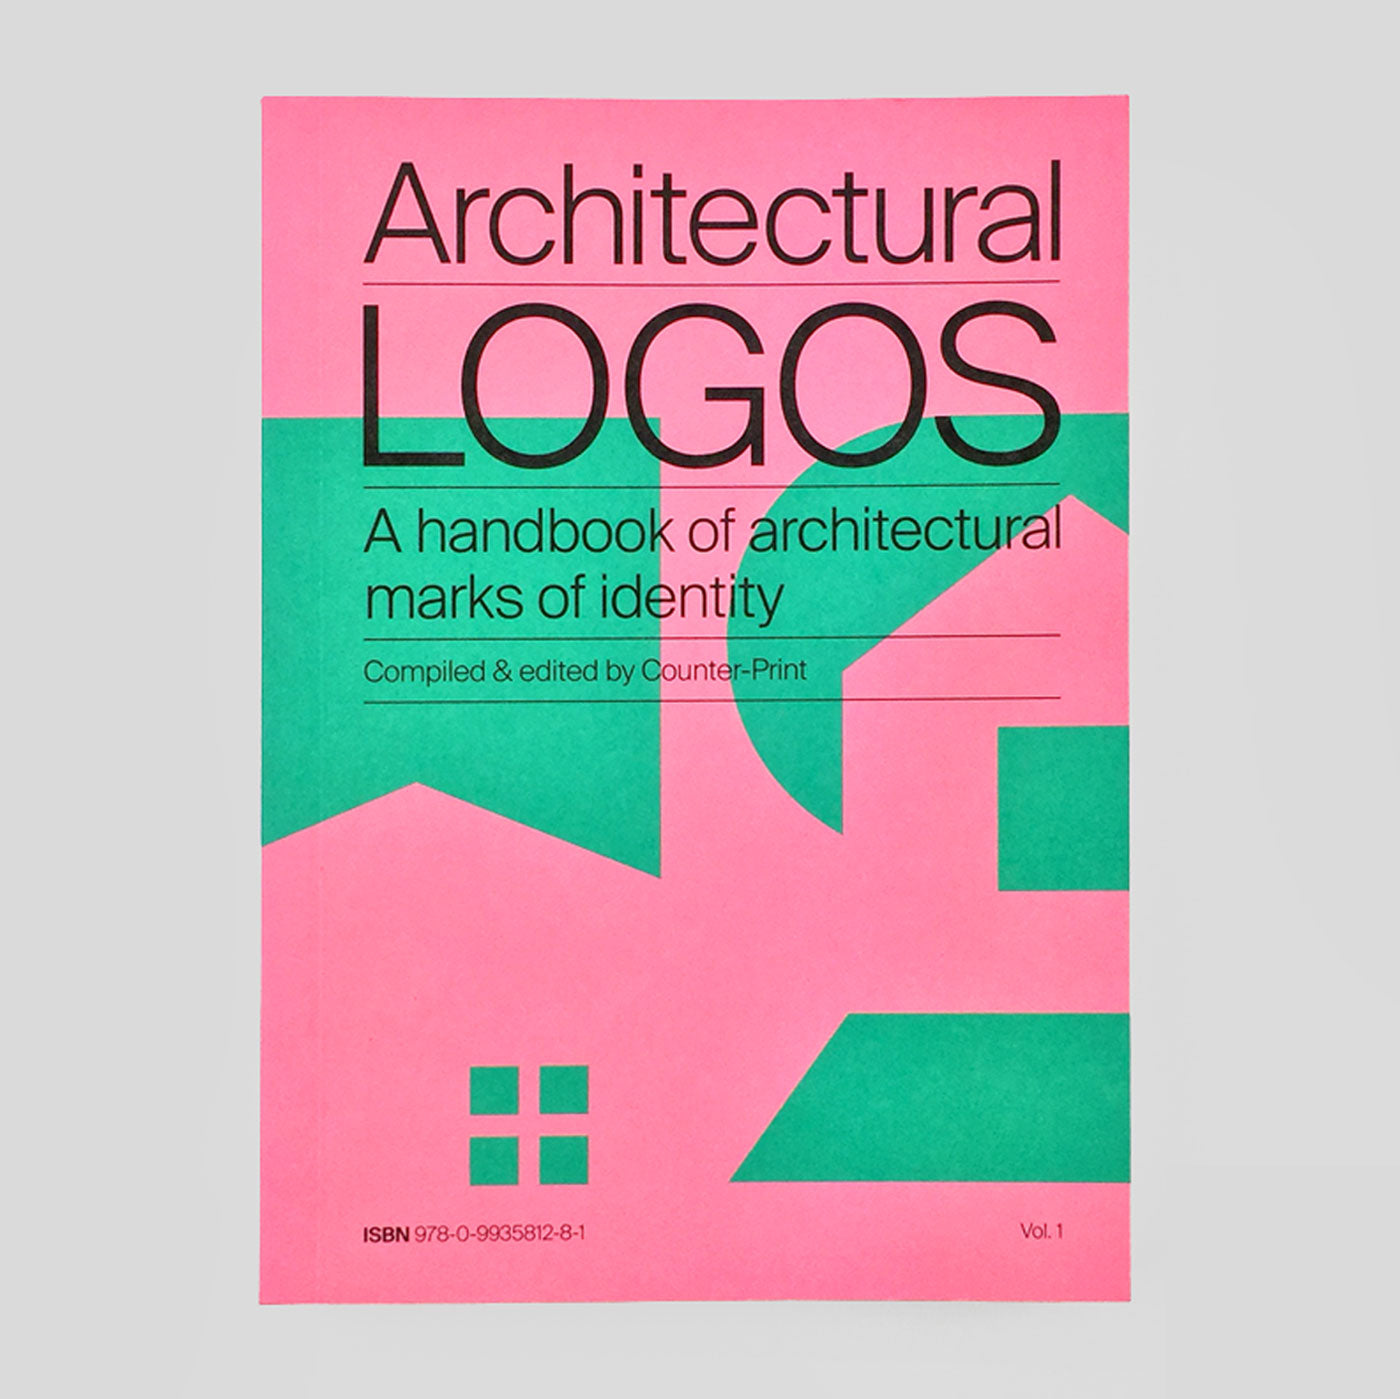 Architectural Logos: A Handbook of Architectural Marks of Identity by Counter-Print. Colours May Vary.